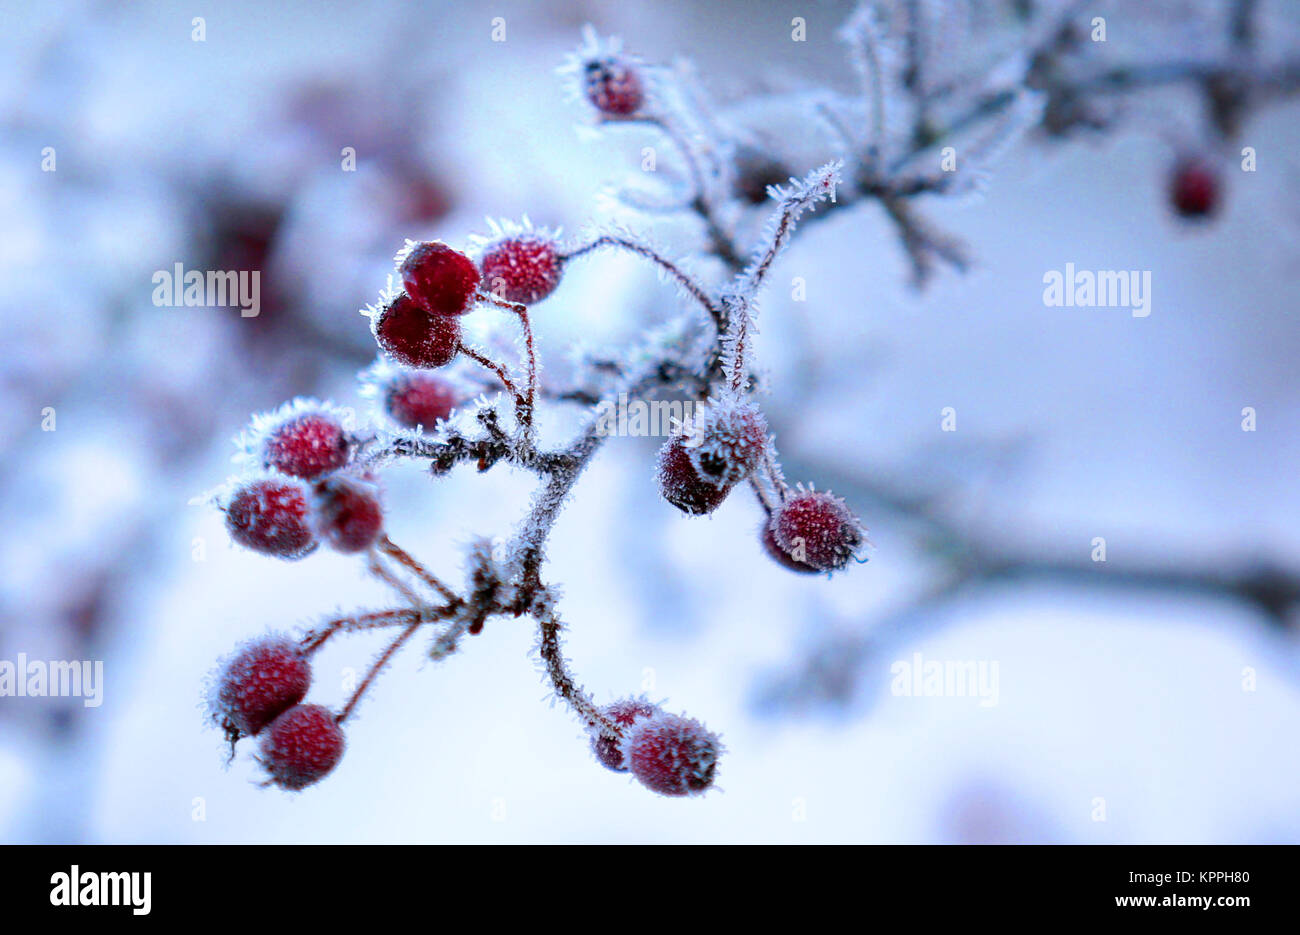 Ice covered berries in the Scottish Borders, as fresh warnings for ice have been issued for parts of Scotland as - Stock Image